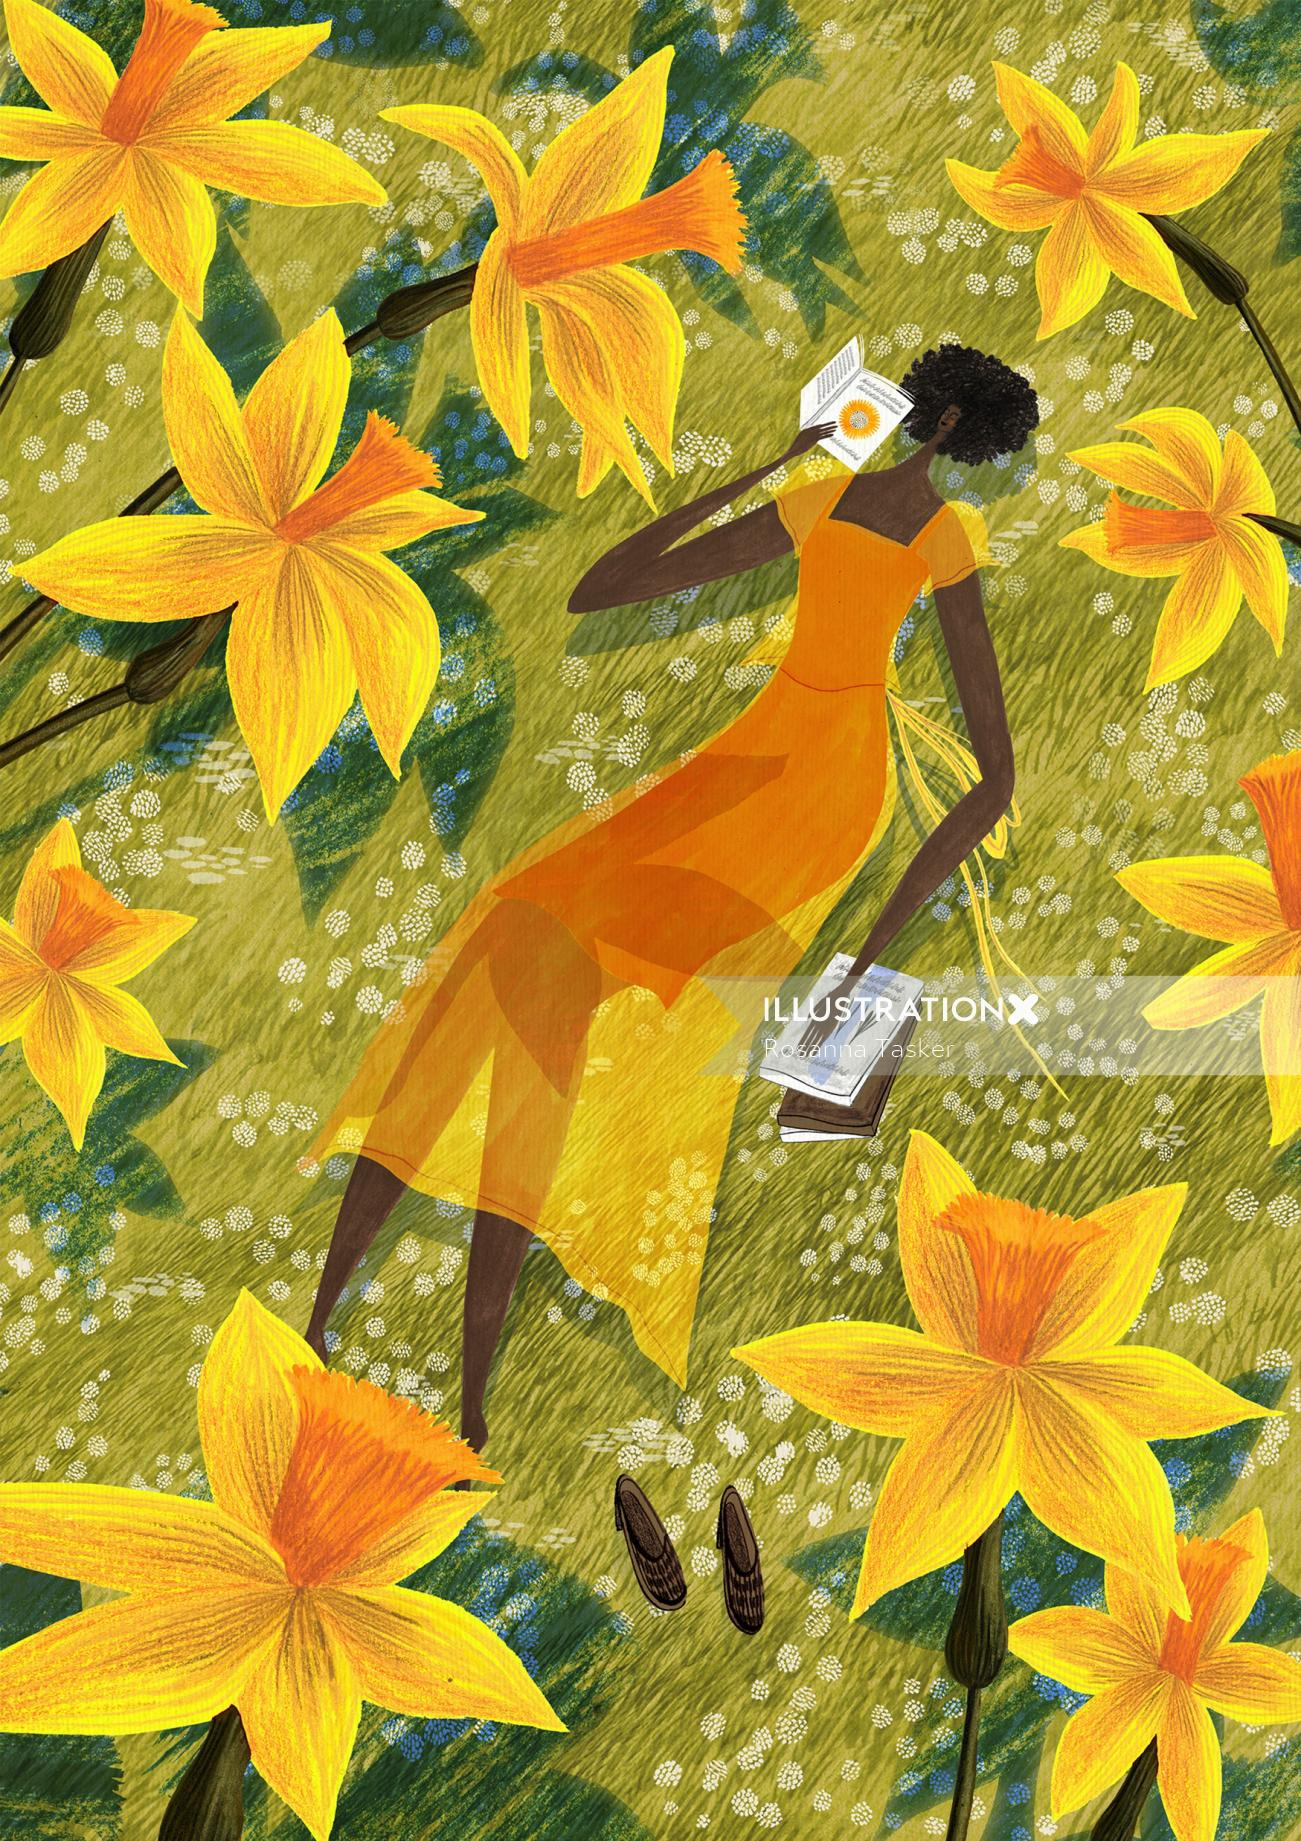 daffodil, daffodils, flowers, flower, spring, yellow, read, reading, book, books